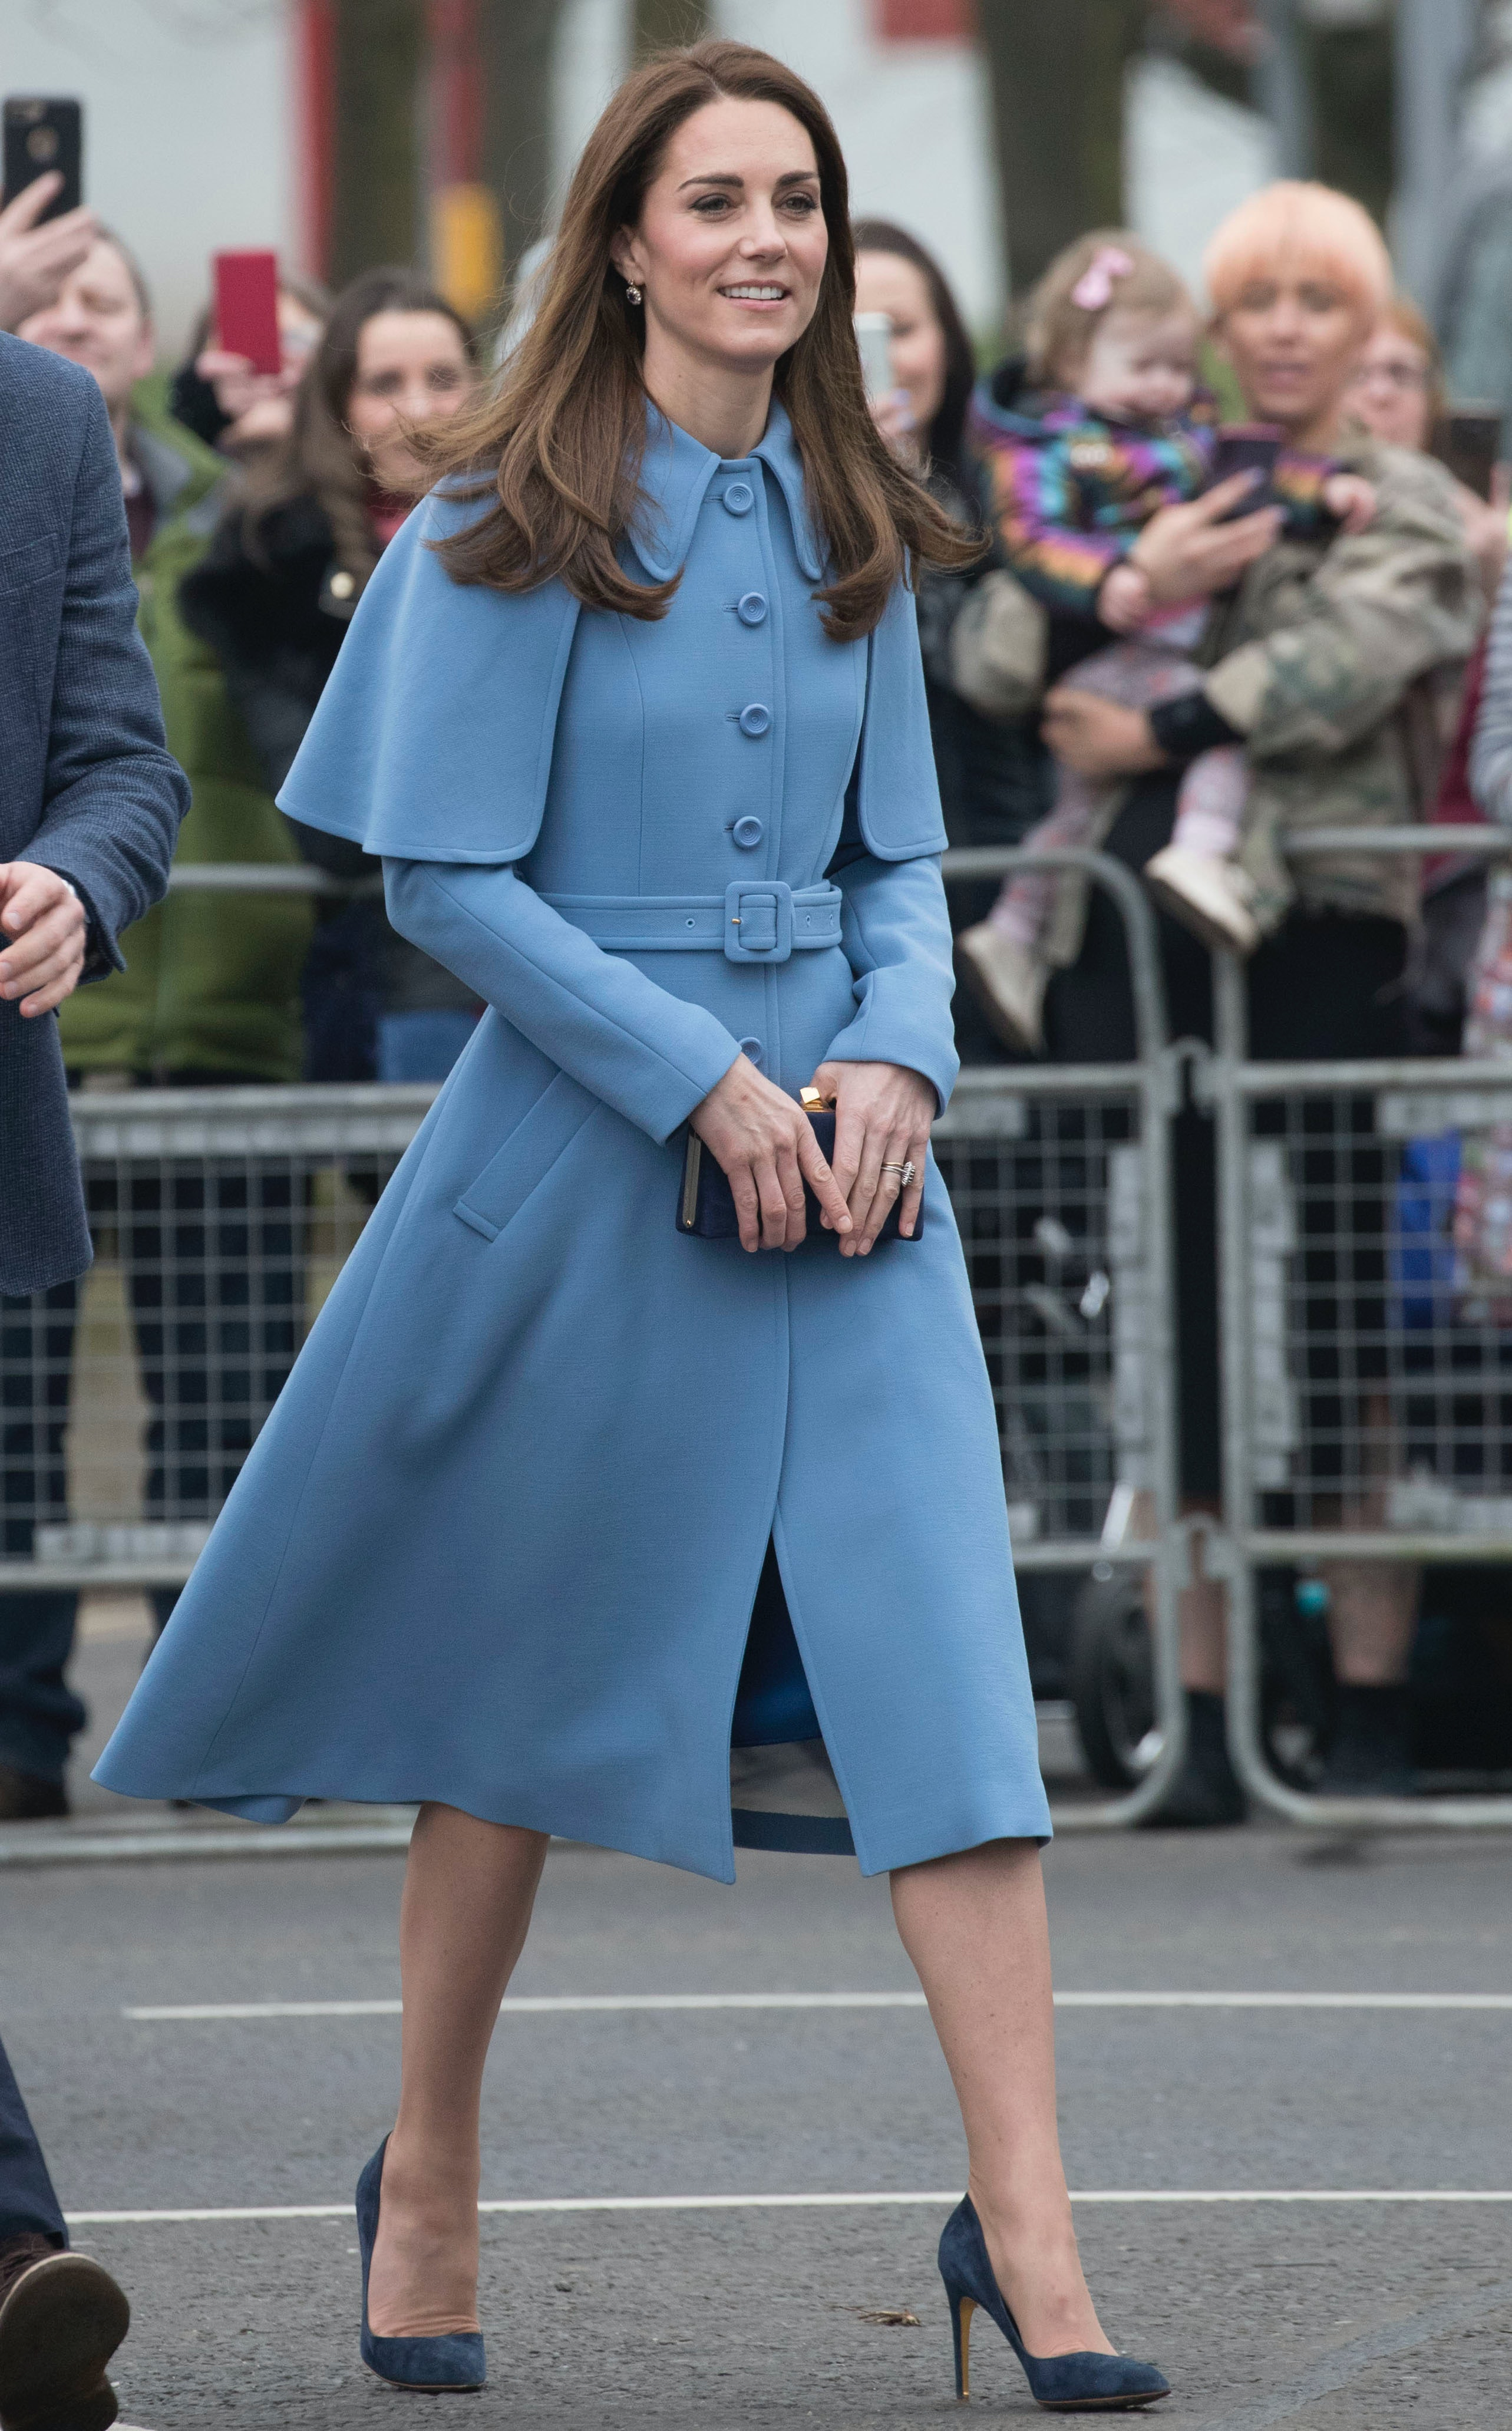 879fc300b91dc Kate Middleton's Powder Blue Coat Dress Will Inspire You To Wear Color This  Season